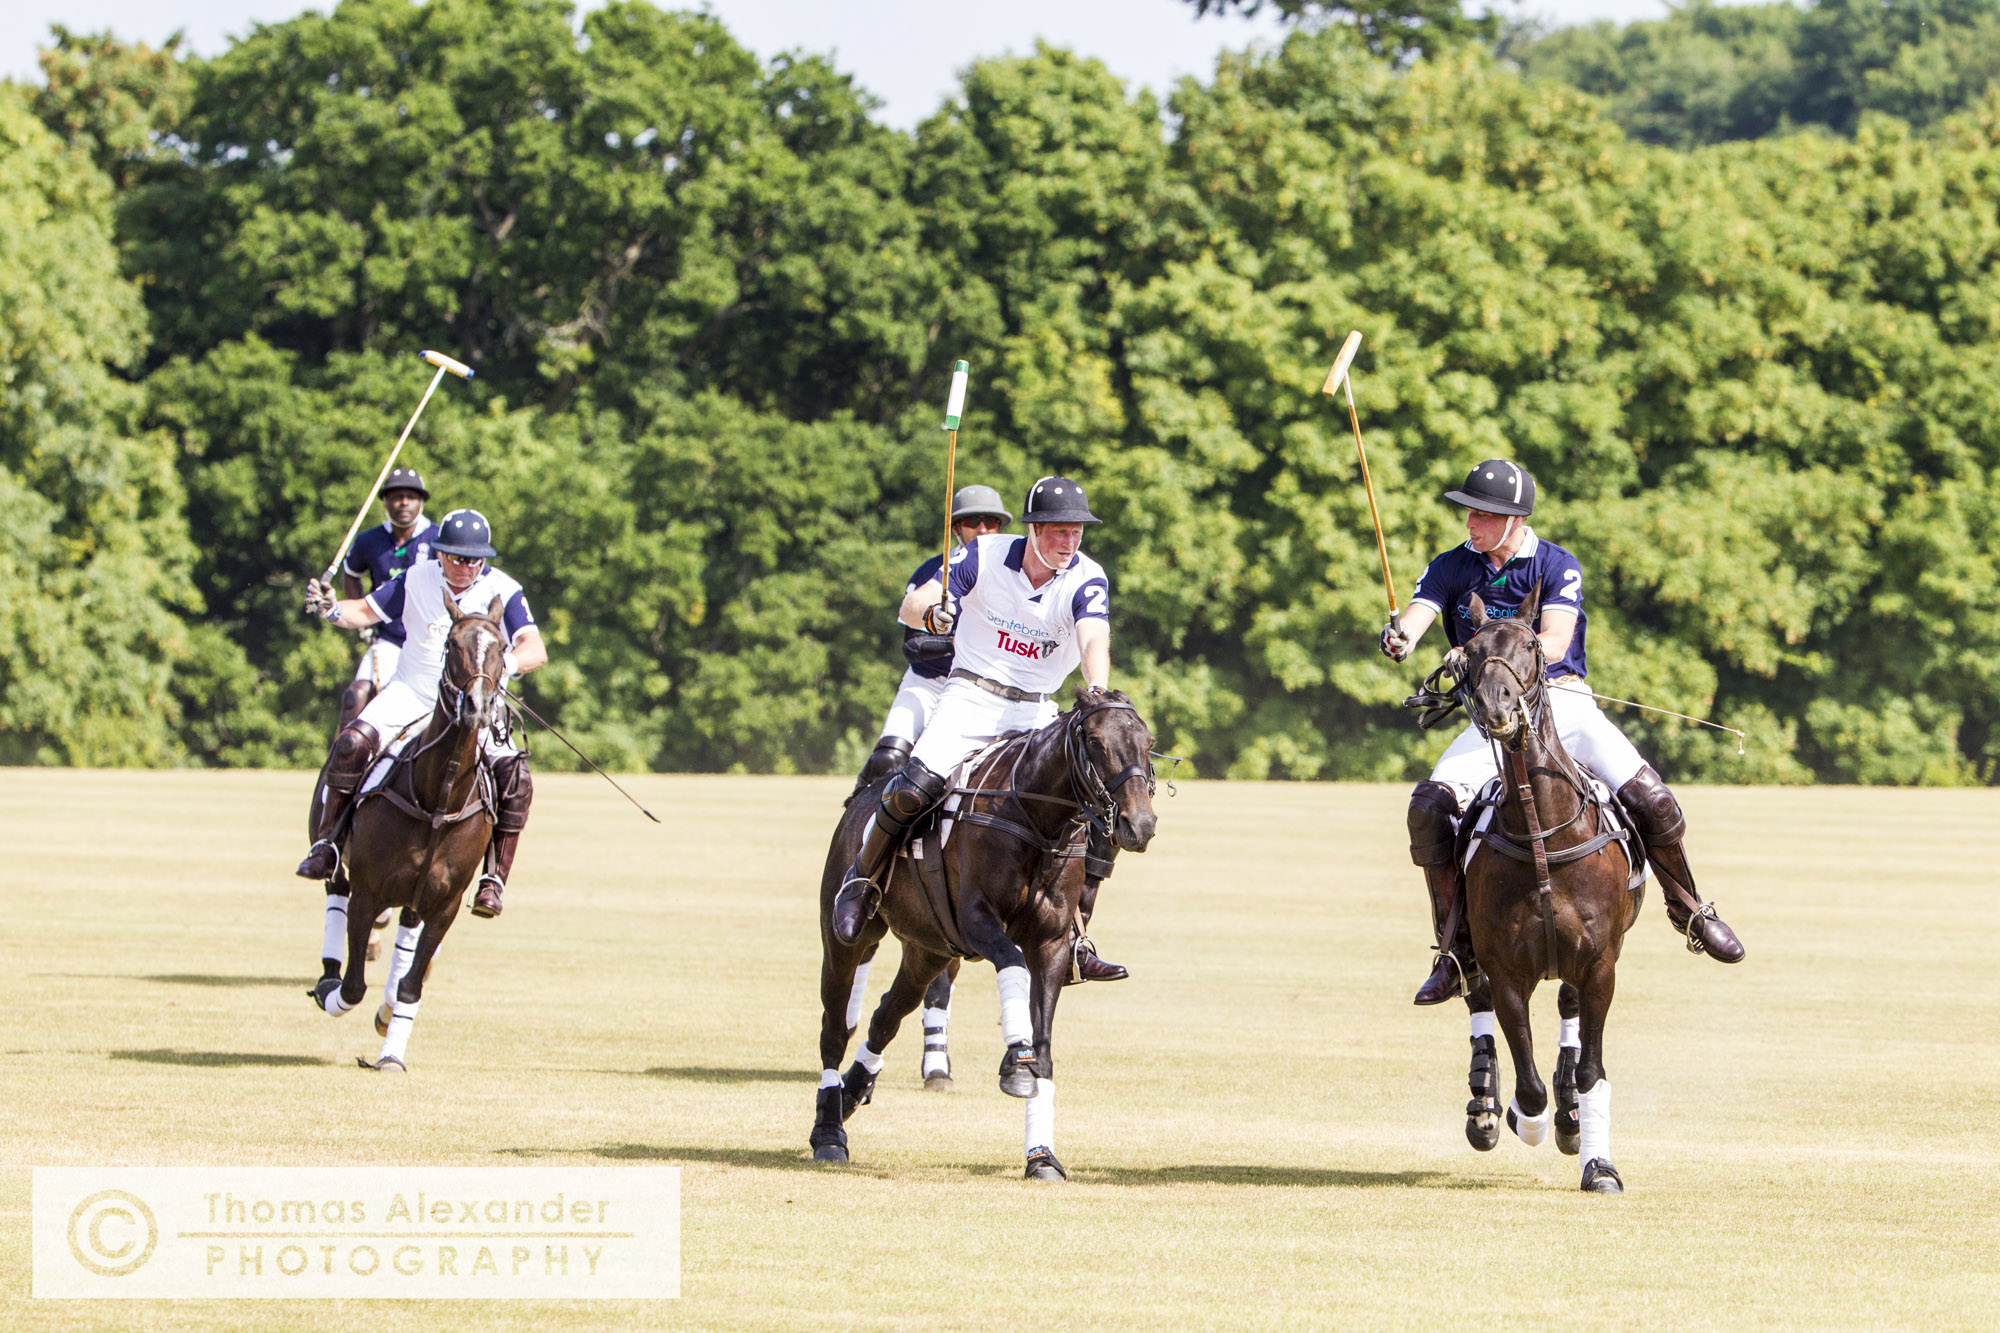 Kent_&_Curwen_Royal_Polo_Day_036.jpg